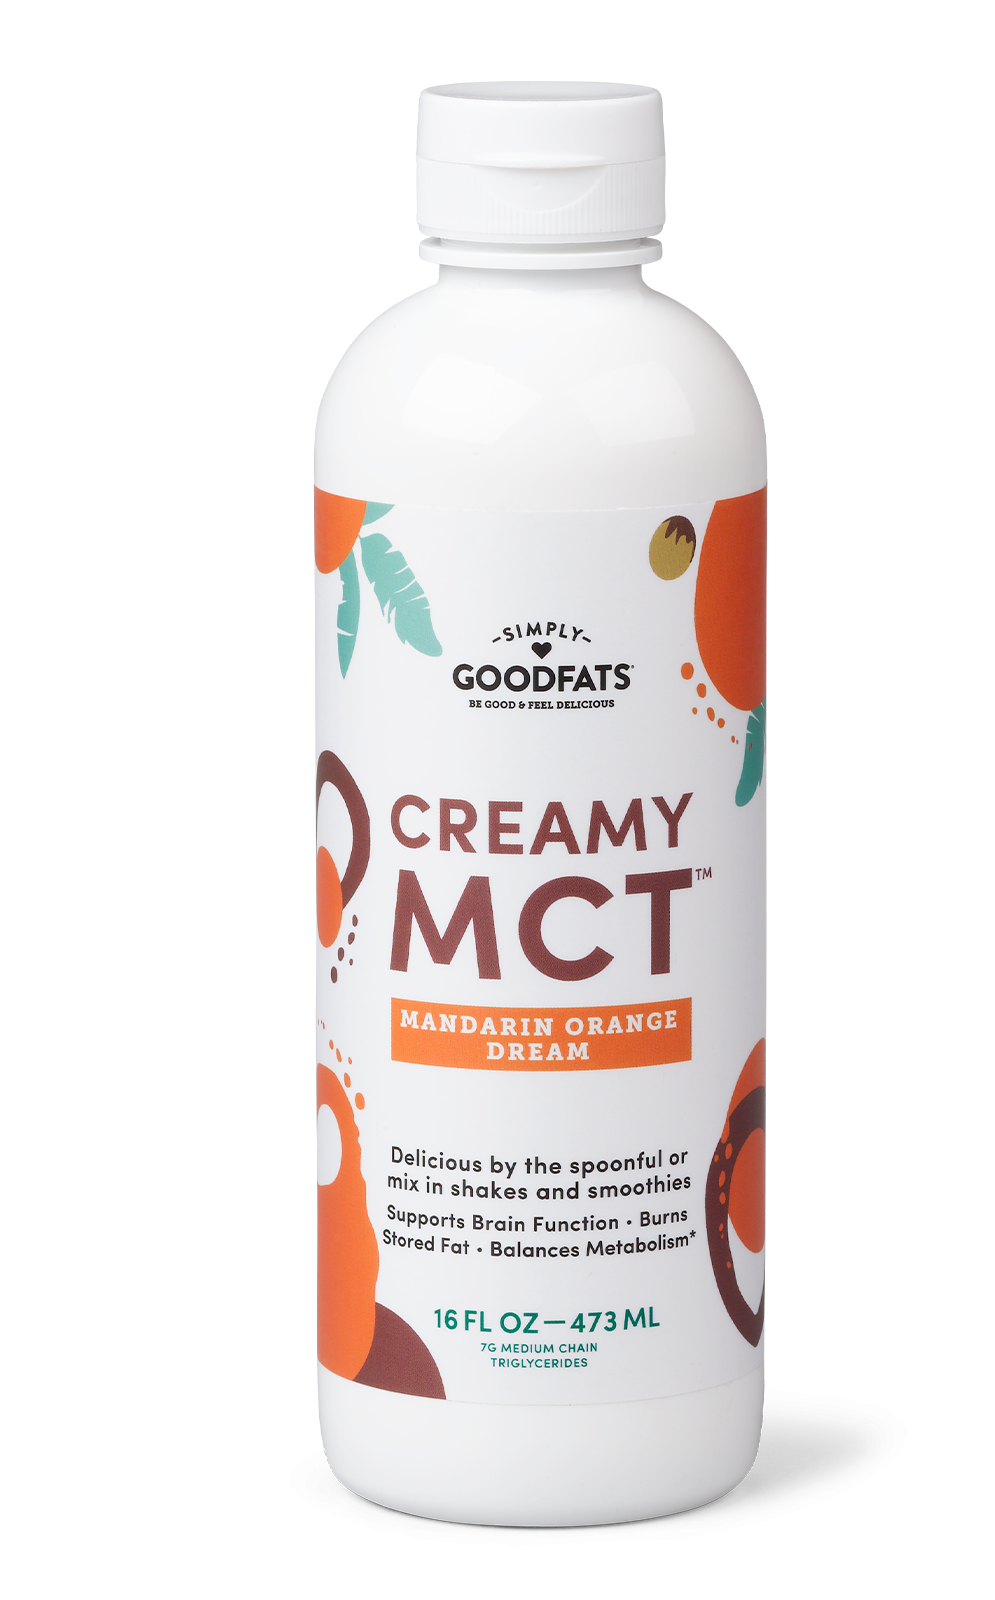 Healthy Good Fats from Creamy MCT Coconut Oil for Keto Diets